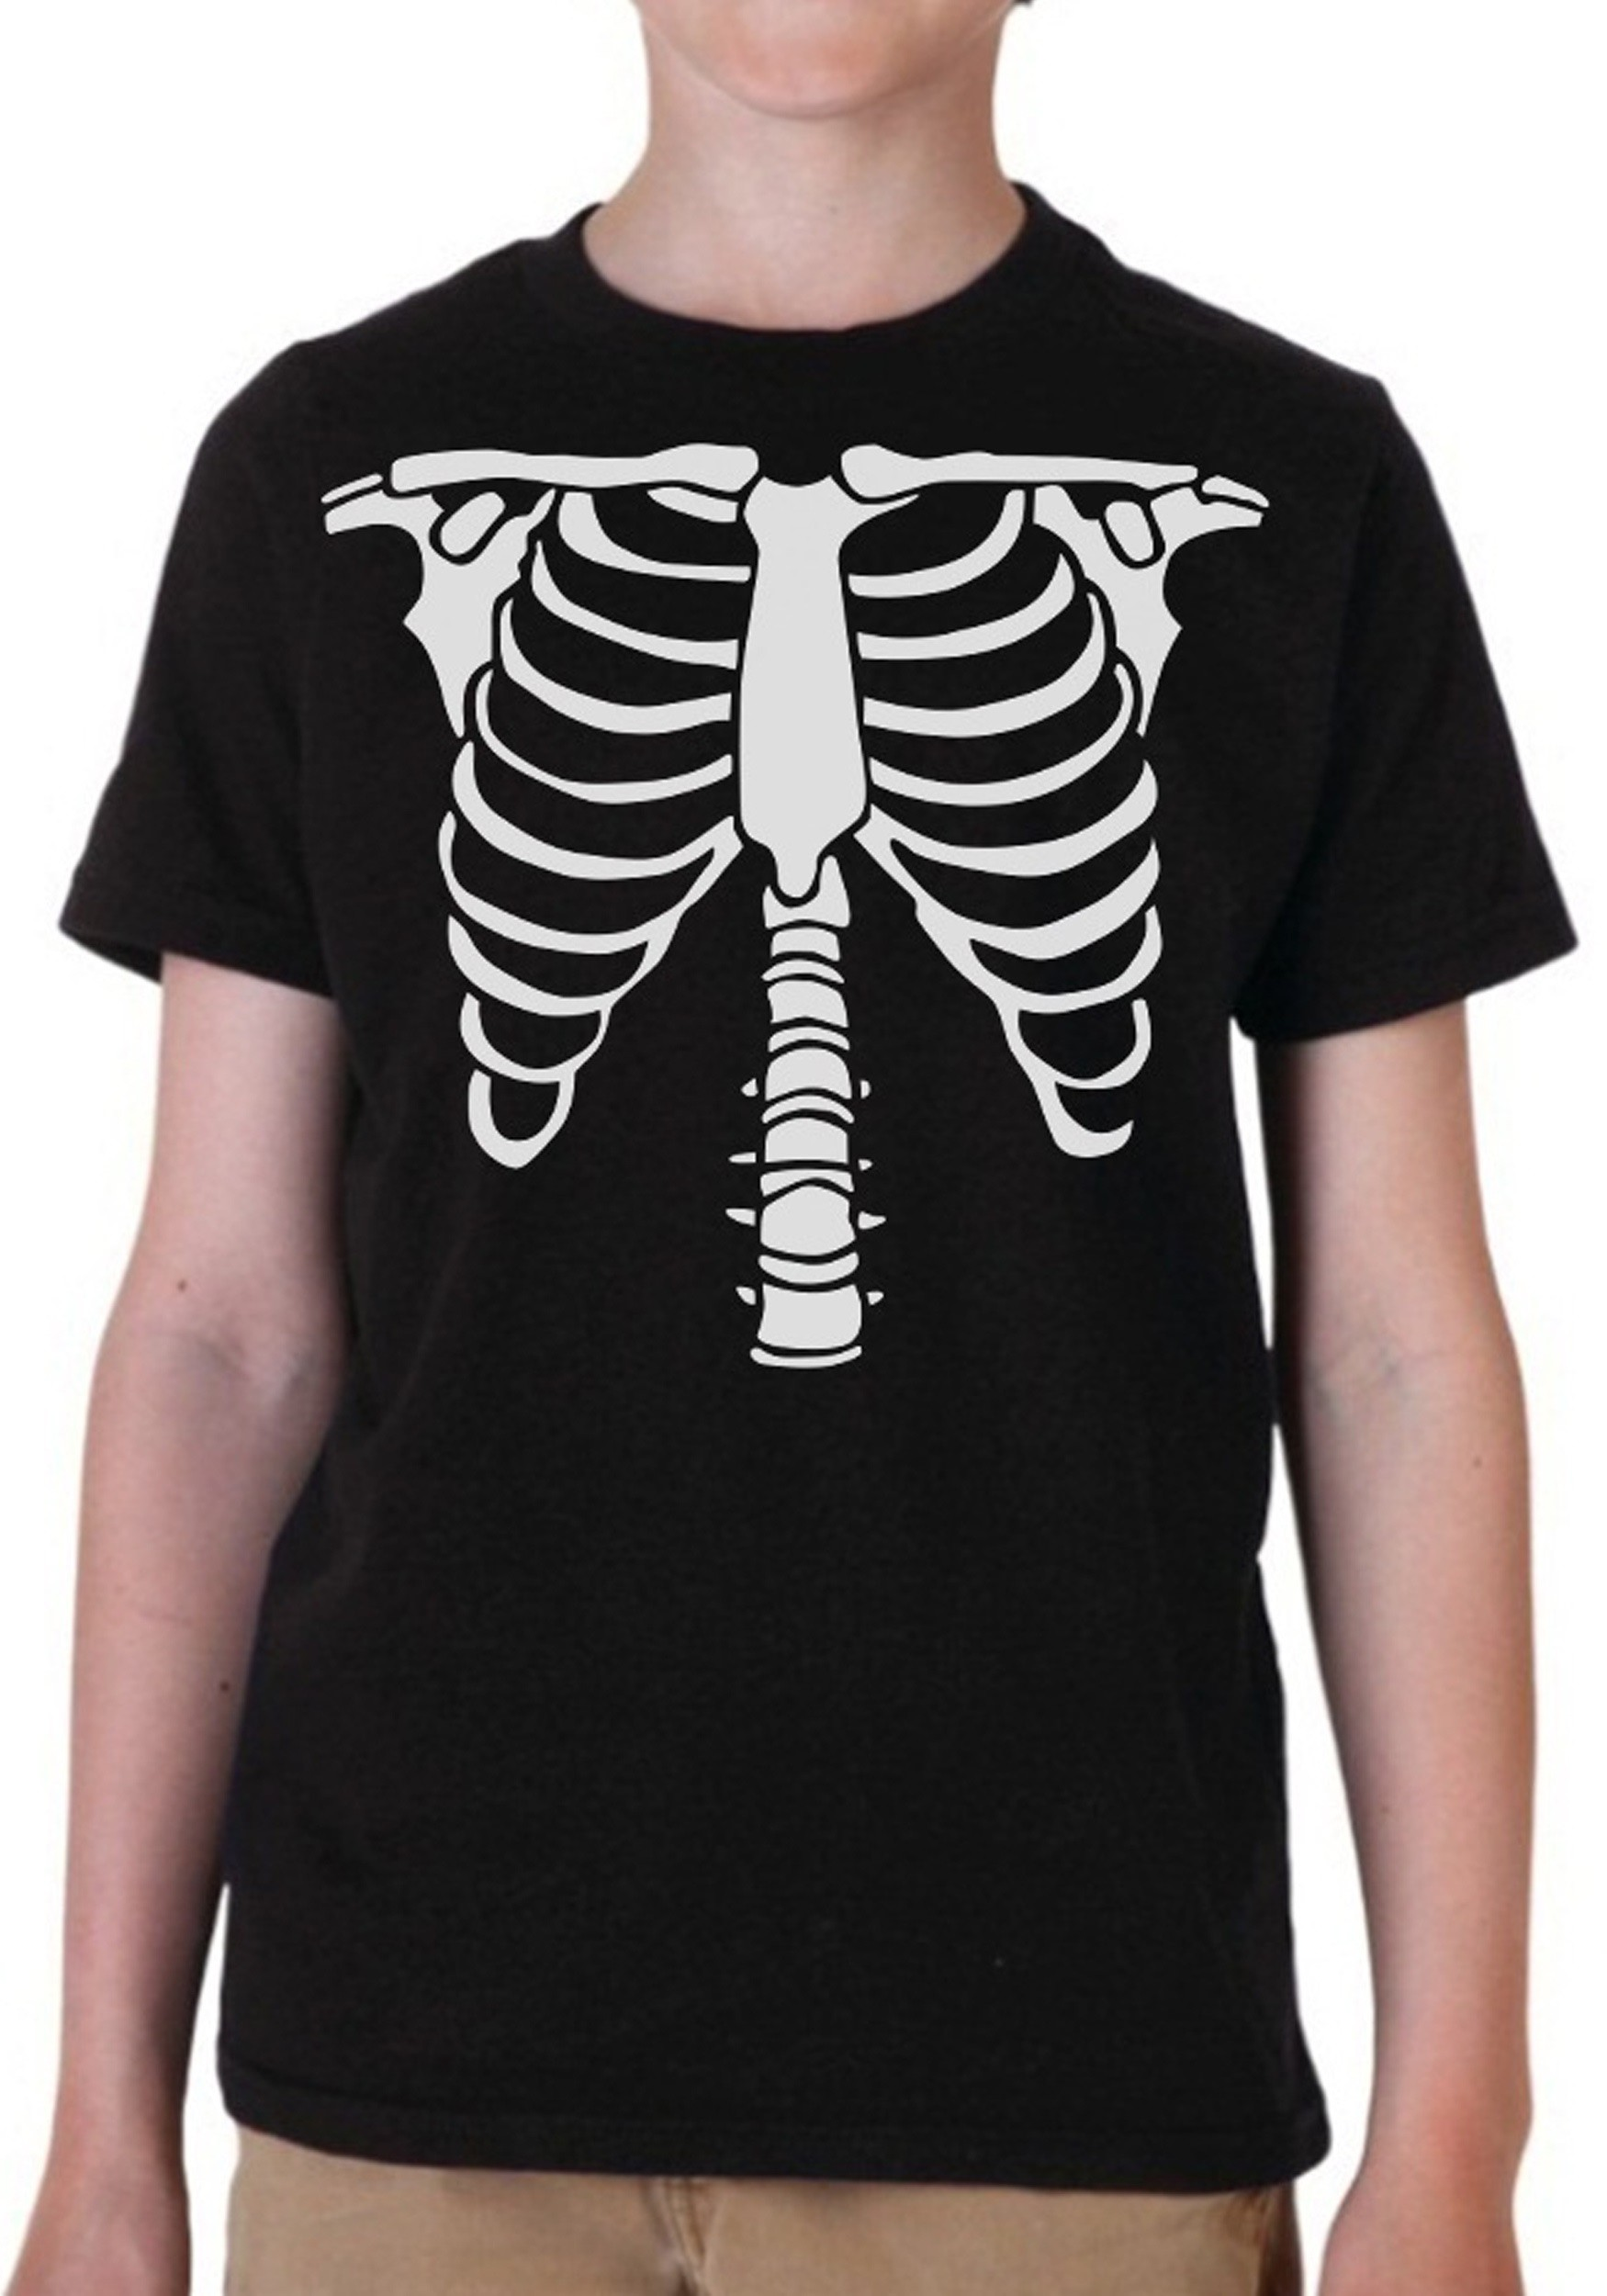 Boys skeleton costume t shirt for Costume t shirts online